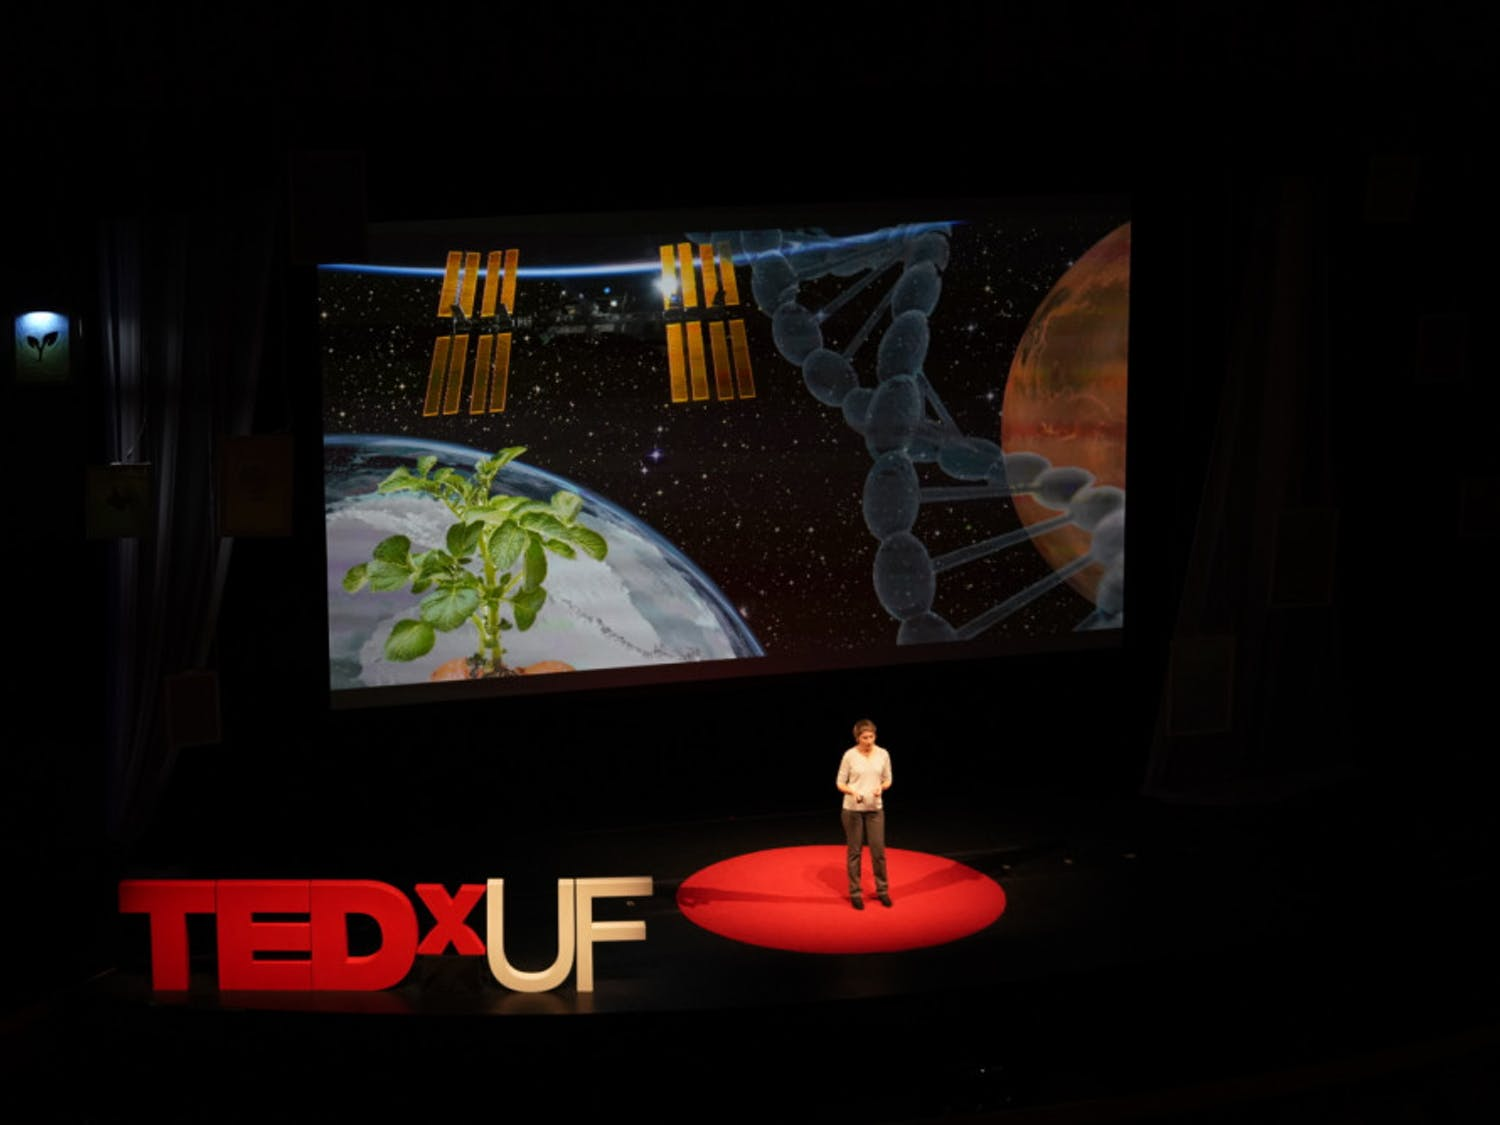 "Anna-Lisa Paul, a UF horticultural sciences research professor, discussed how to be a better martian gardener with plants on Mars at TEDxUF. ""Plants truly enable us to colonize places we've never been before,"" she said."